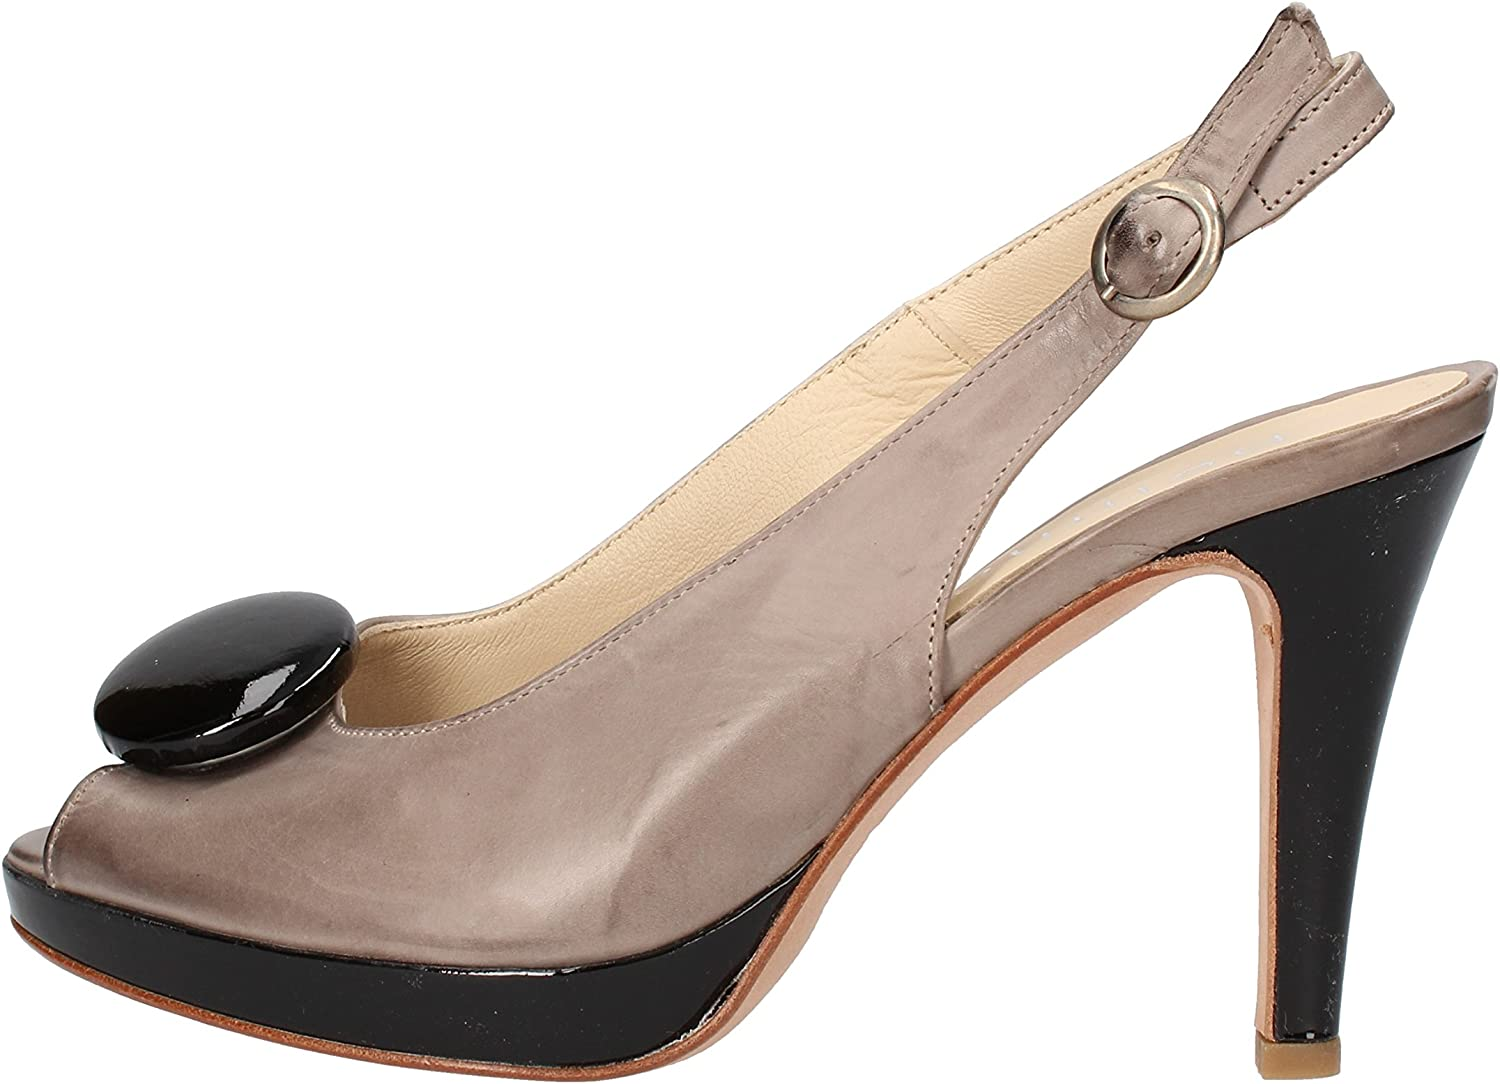 PELLINA Sandals Womens Leather Grey